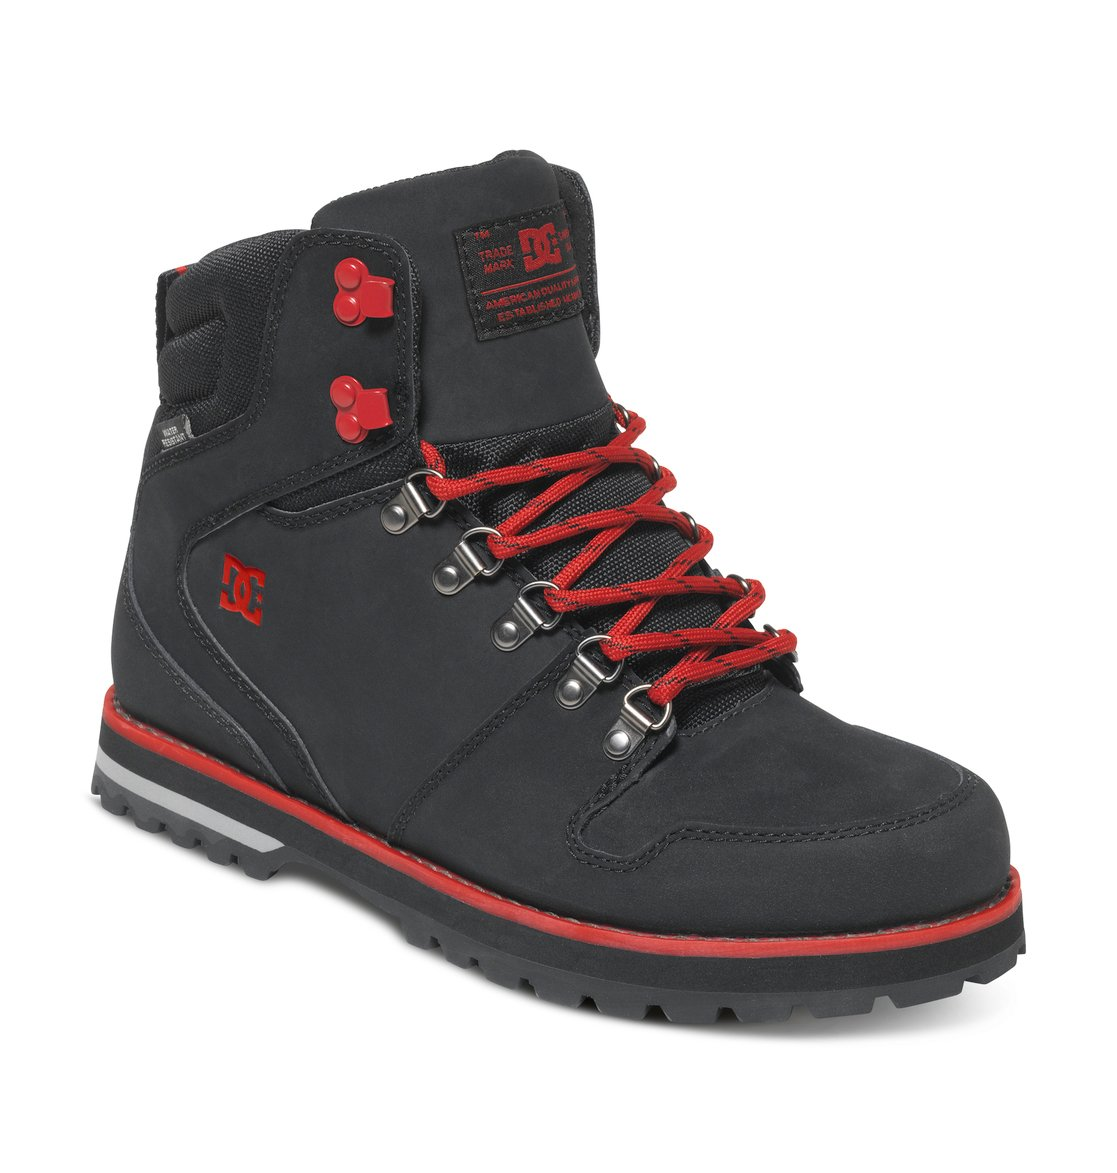 DC Shoes™ Men's Peary Winter Boots 320395 | eBay